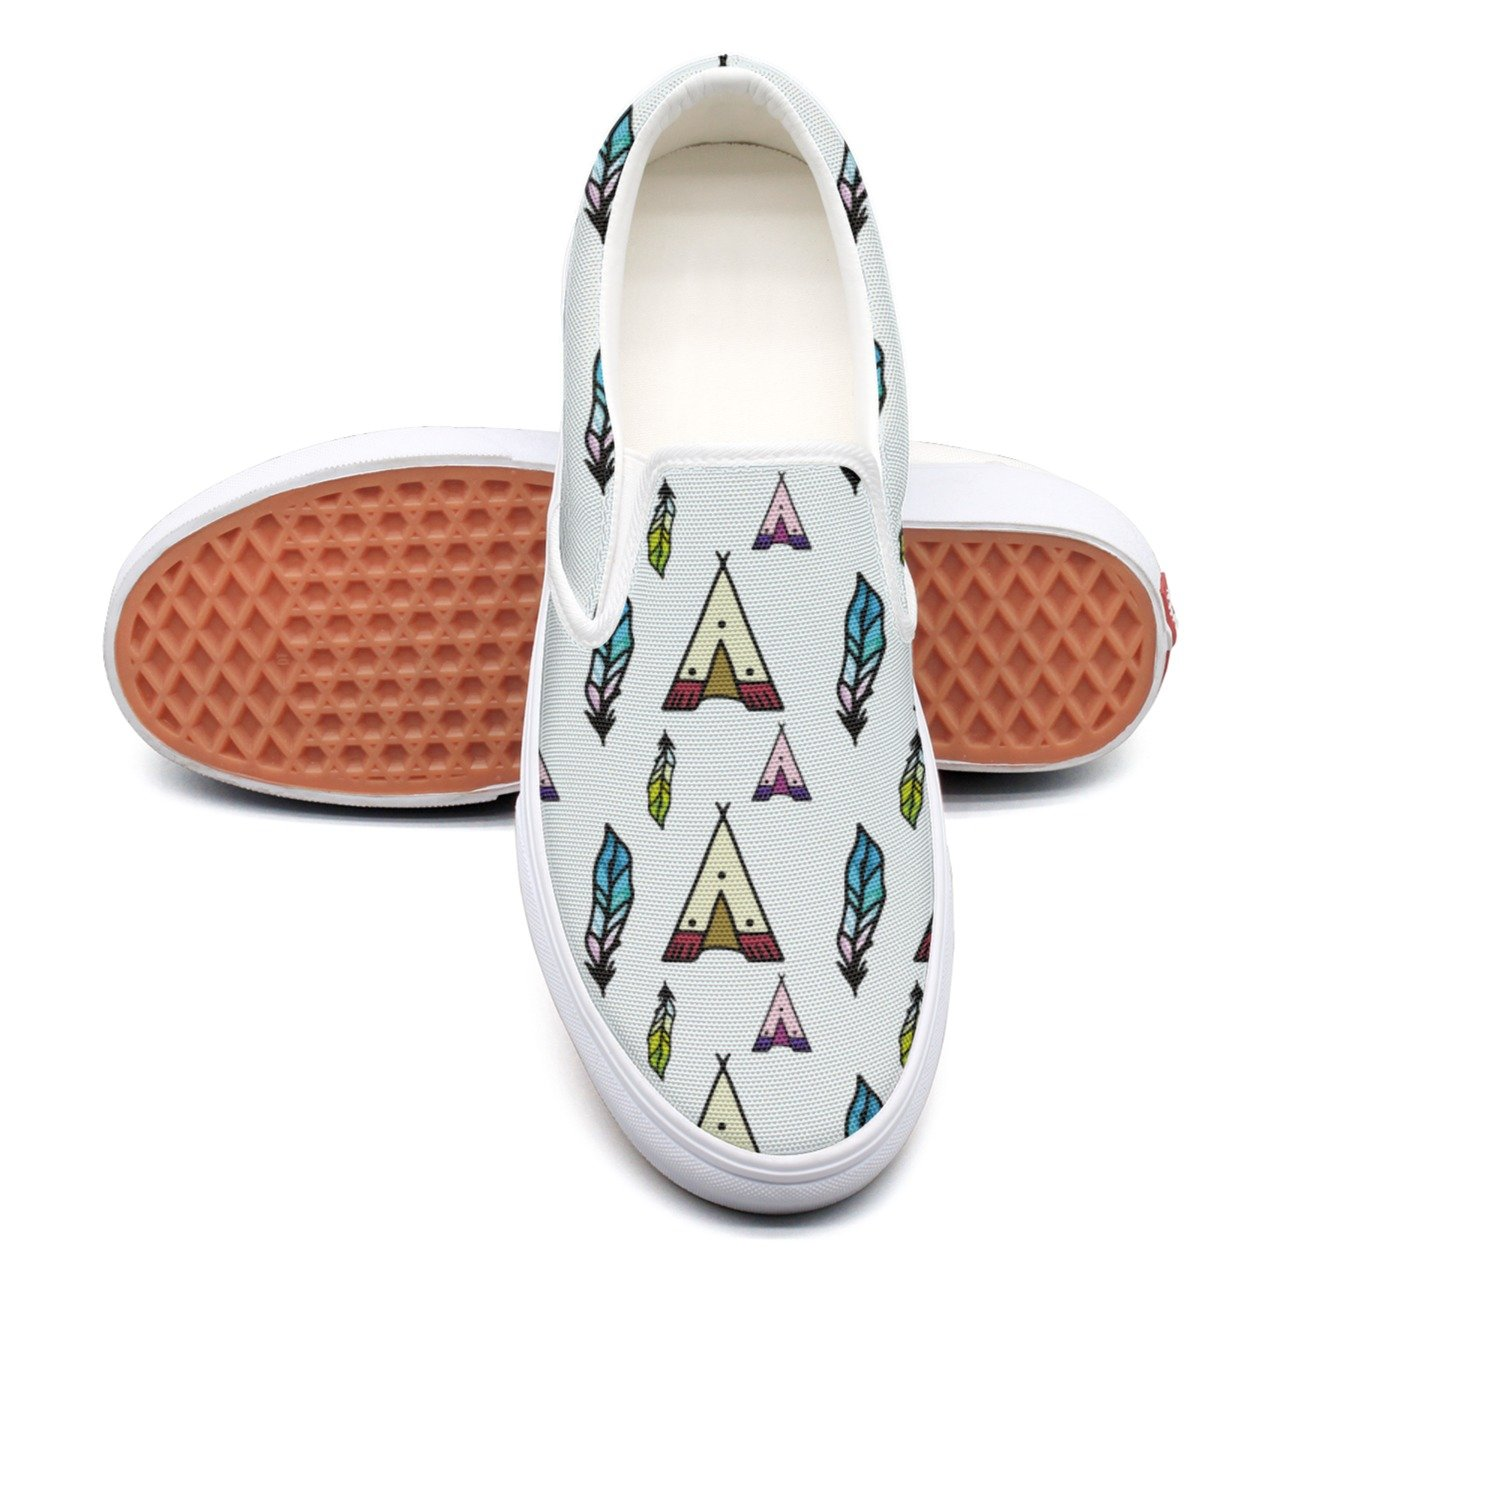 VCERTHDF Feather Tribal Teepee Indian Pattern Fashion Slip-On Shoes Mens White